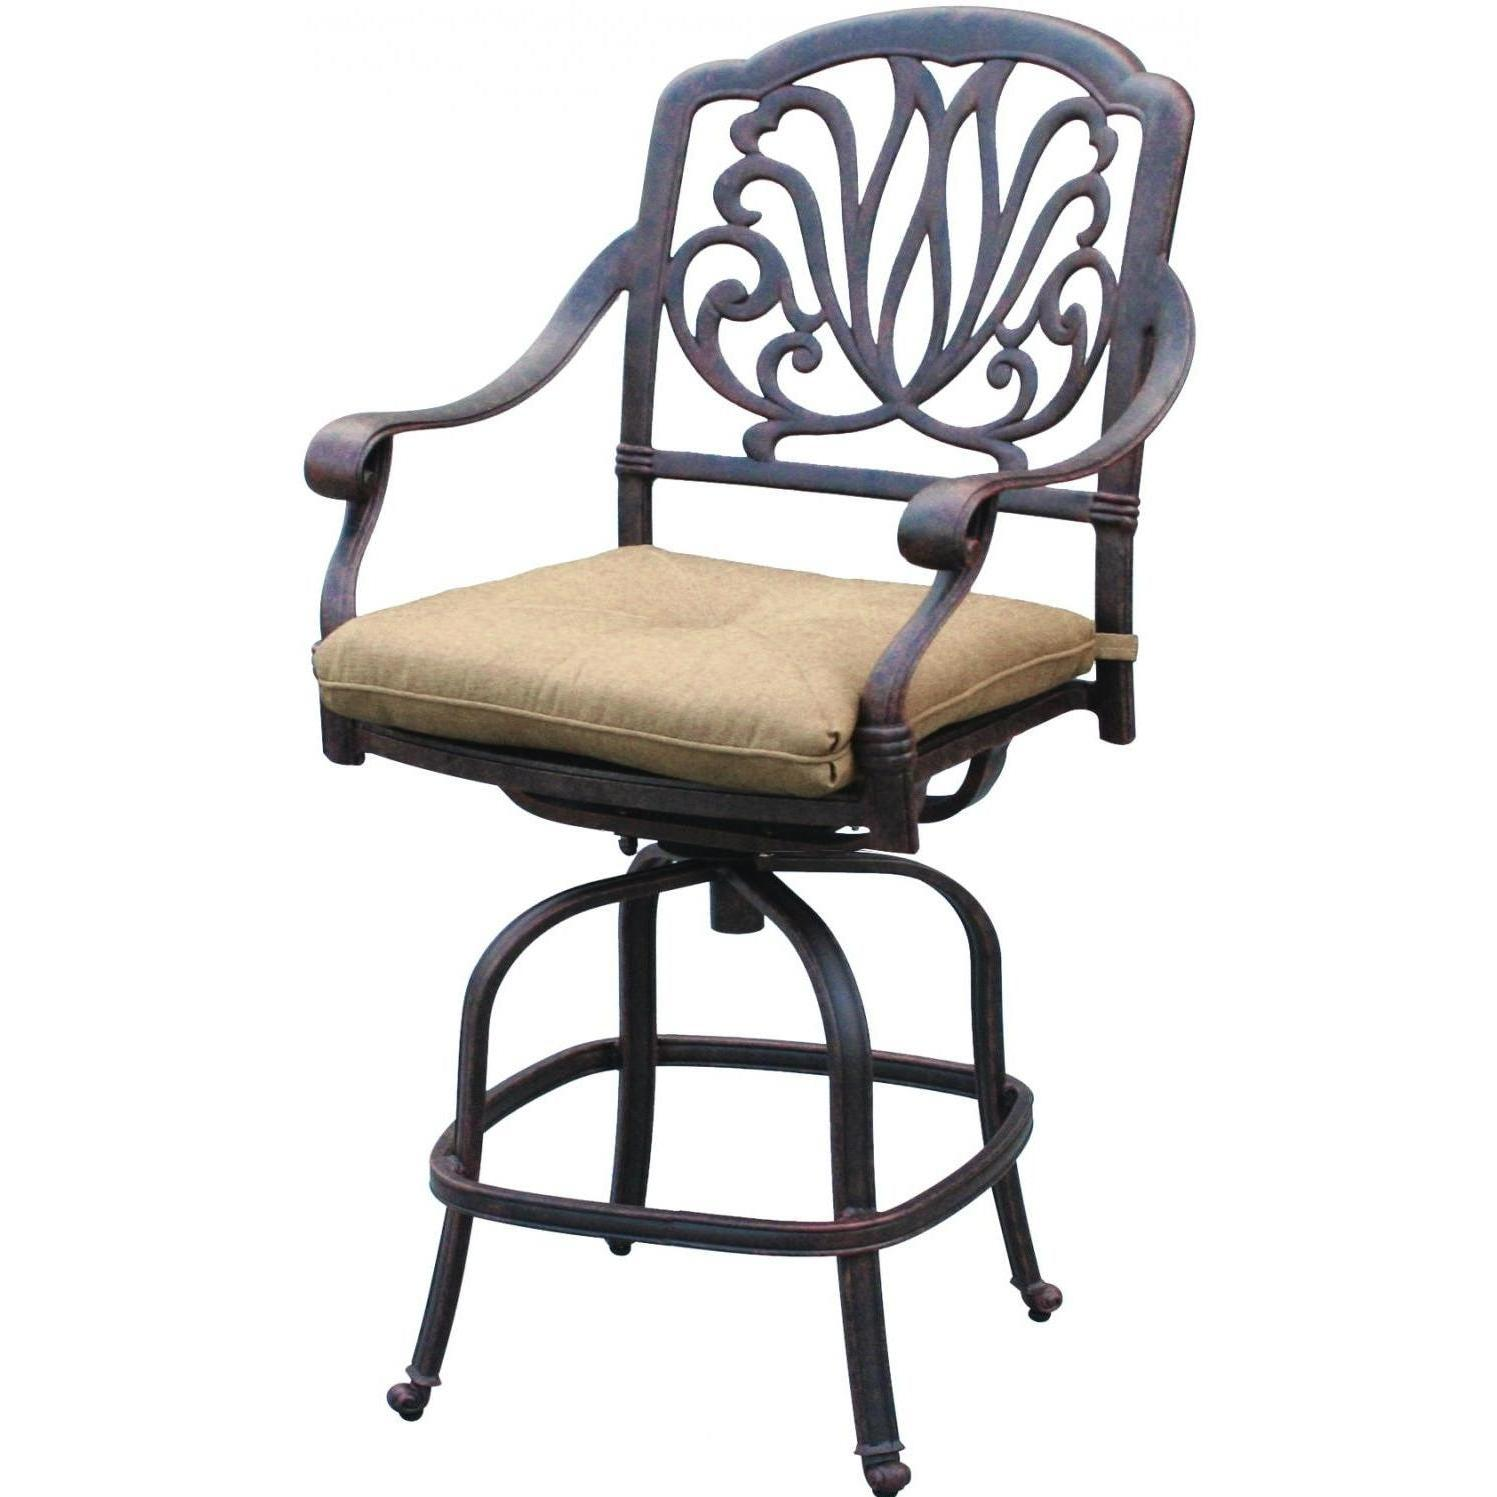 Swell Darlee Elisabeth Cast Aluminum Patio Counter Height Swivel Machost Co Dining Chair Design Ideas Machostcouk